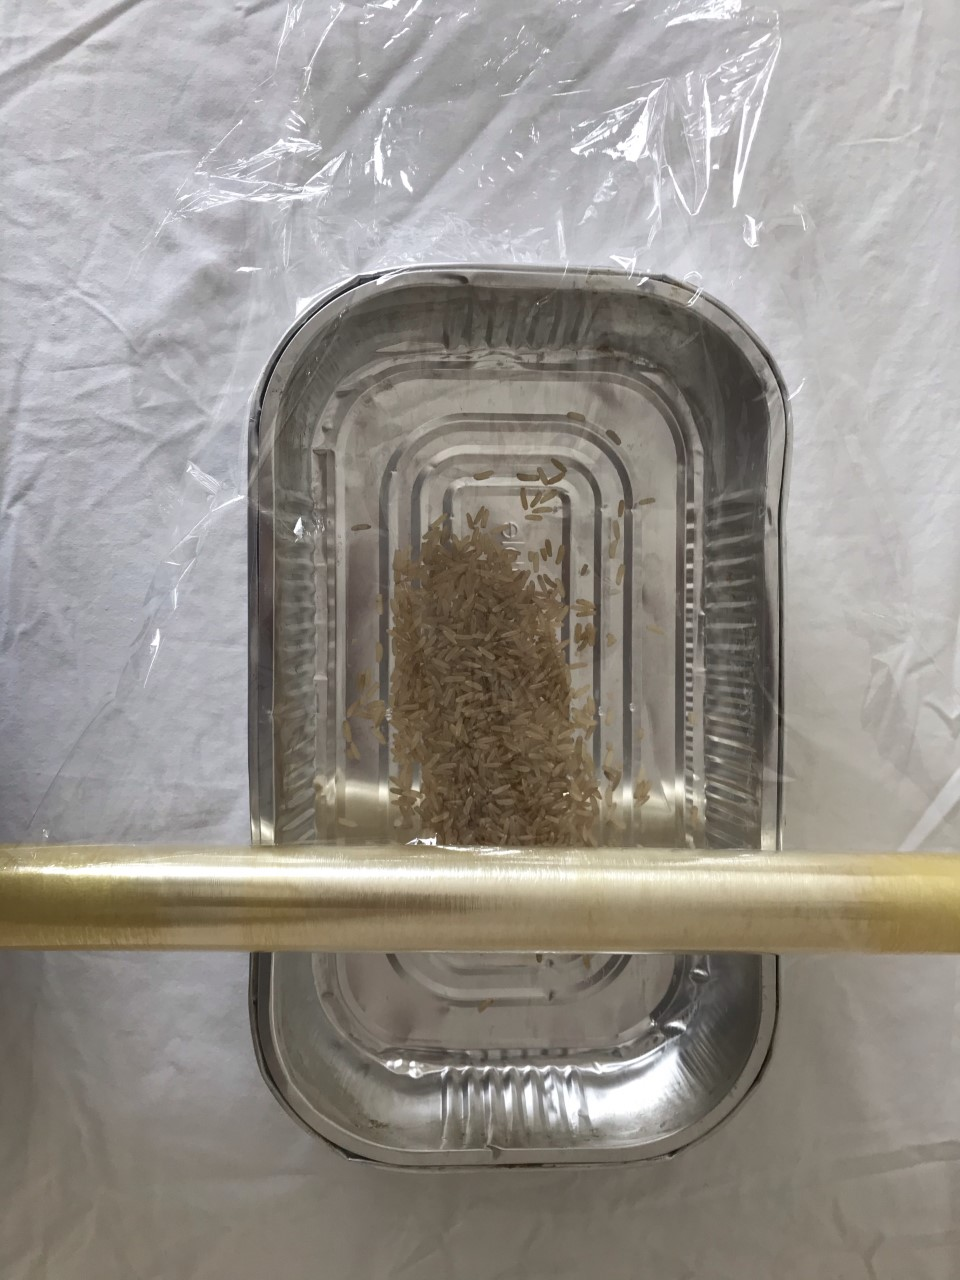 A metal tray with rice inside. Cellophane is being measured out to cover the top of the tray.